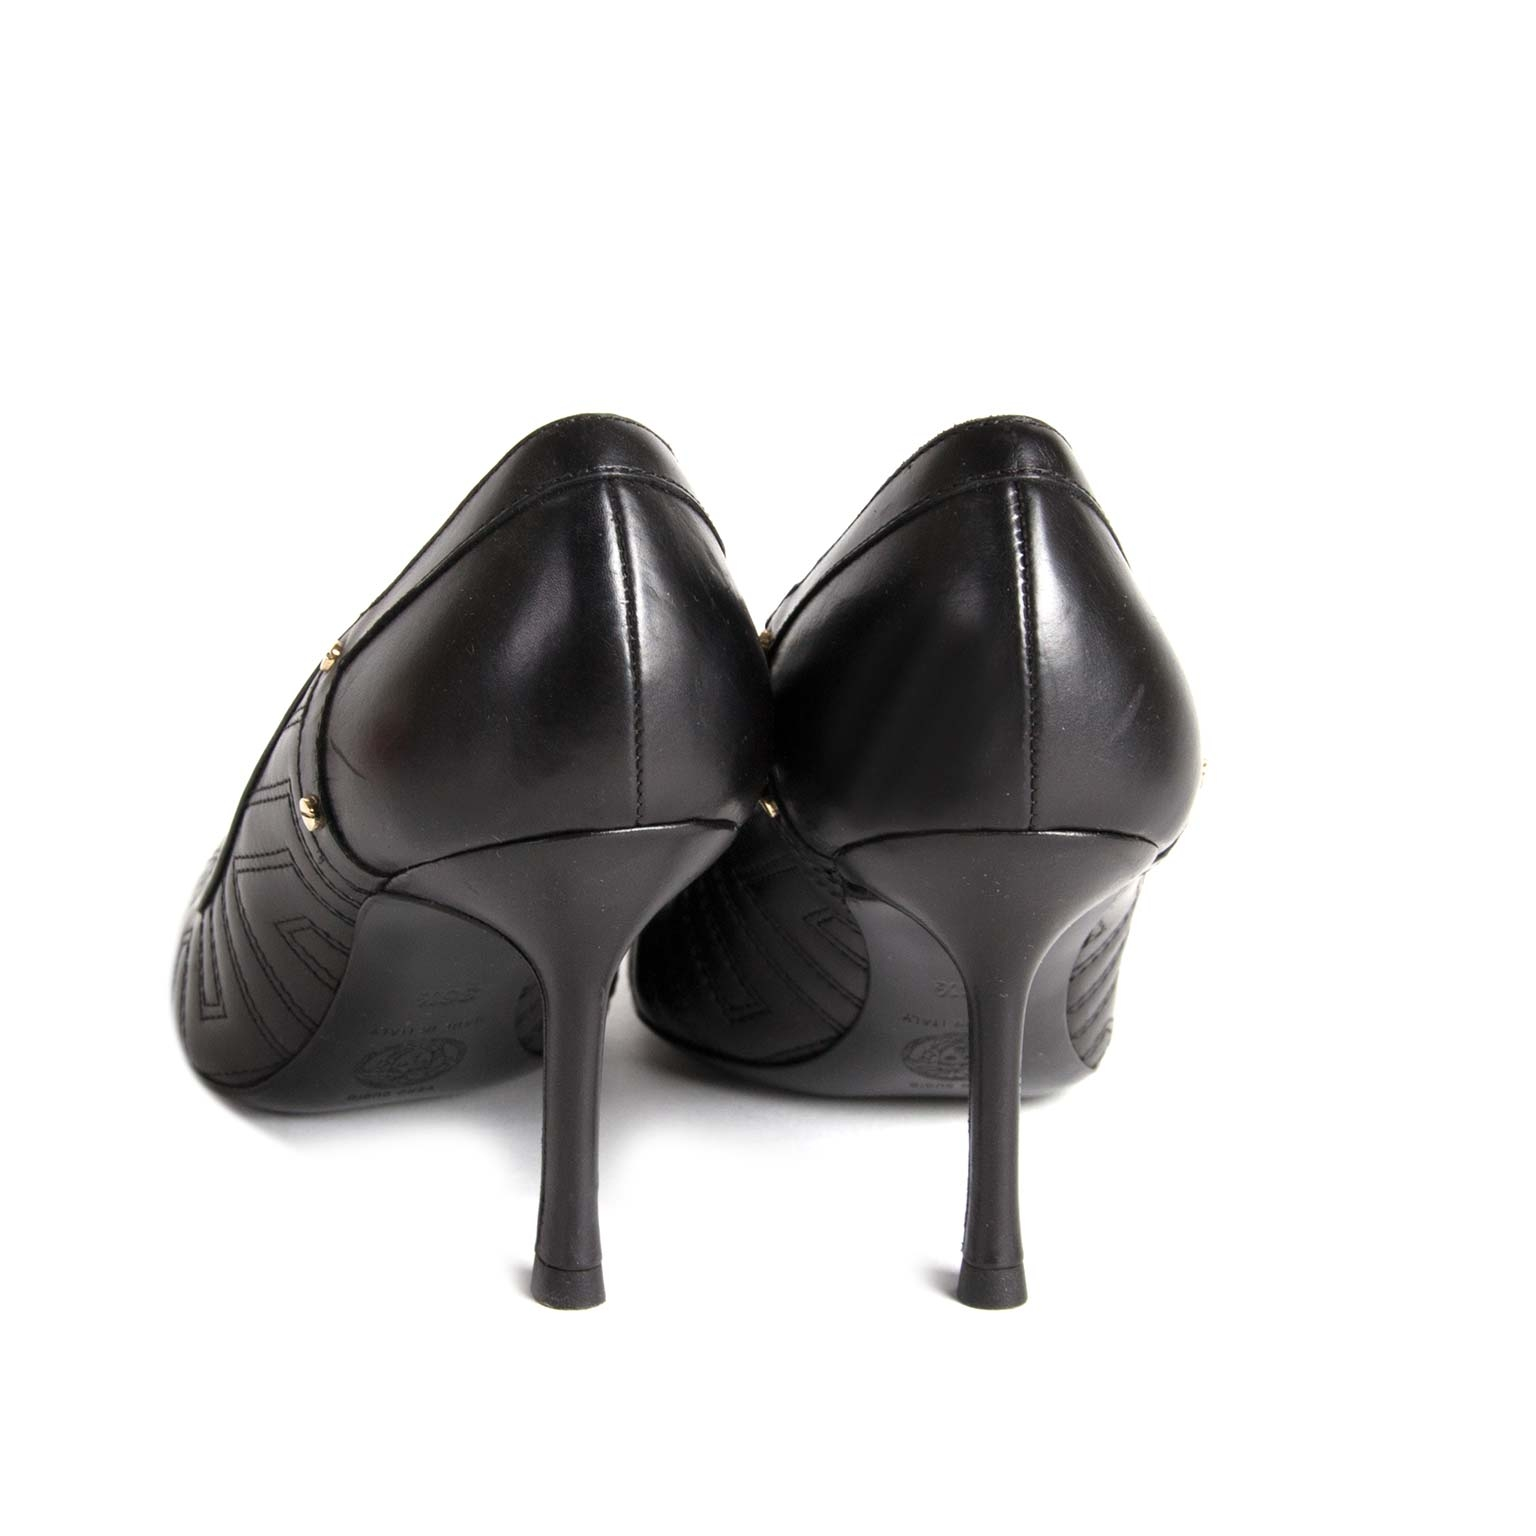 buy  Versace Black Quilted Heels - Size 36,5 at labellov for the best price